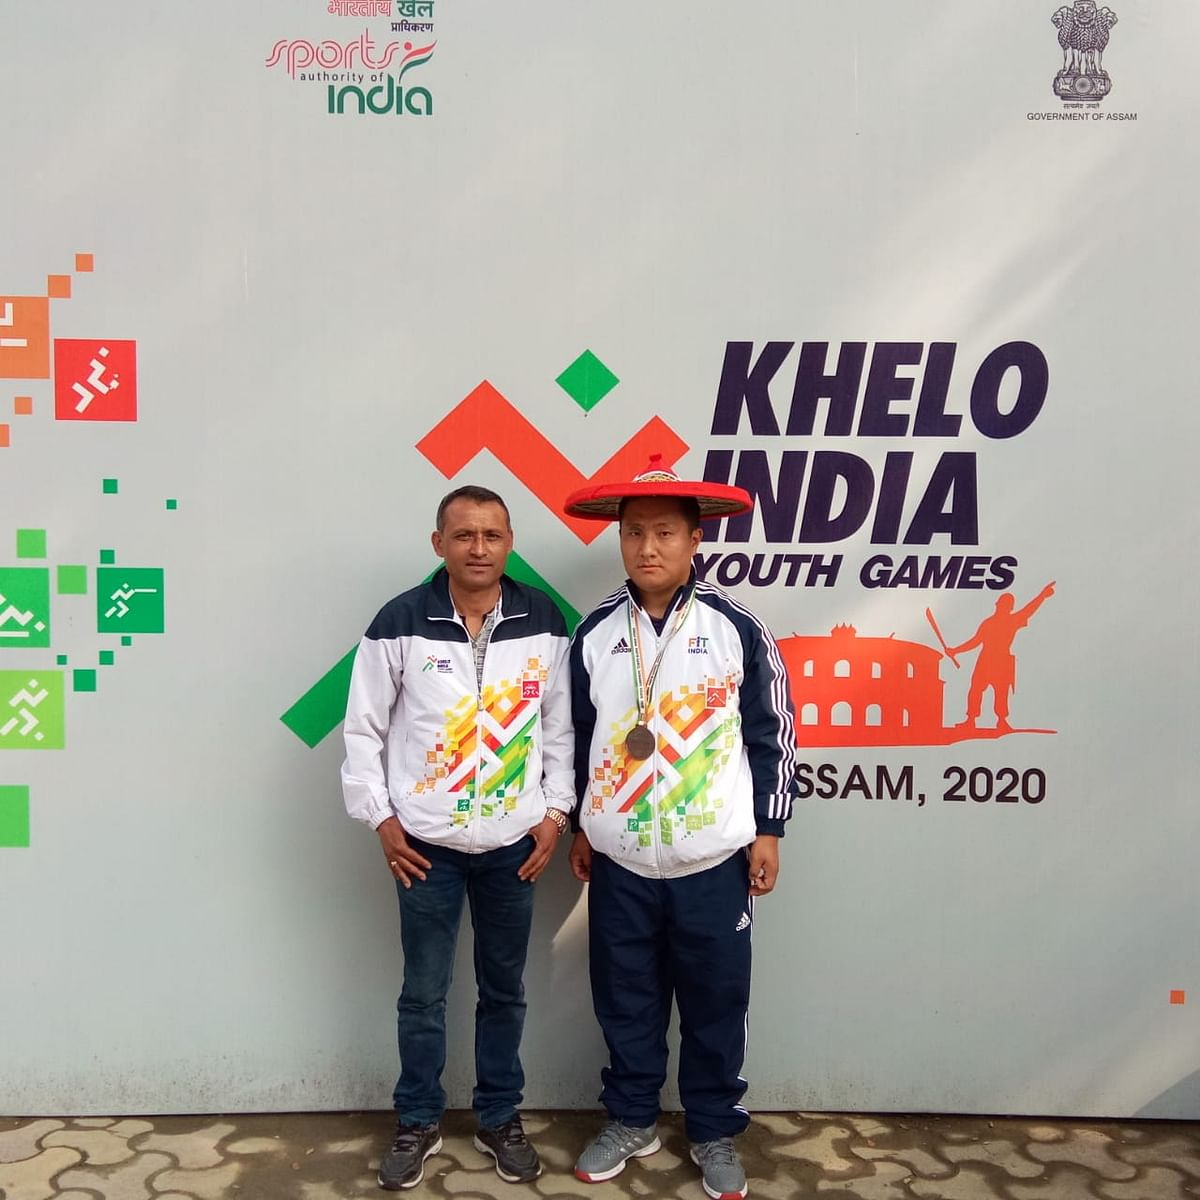 Sikkim's Pemba Tshering Sherpa along with his coach